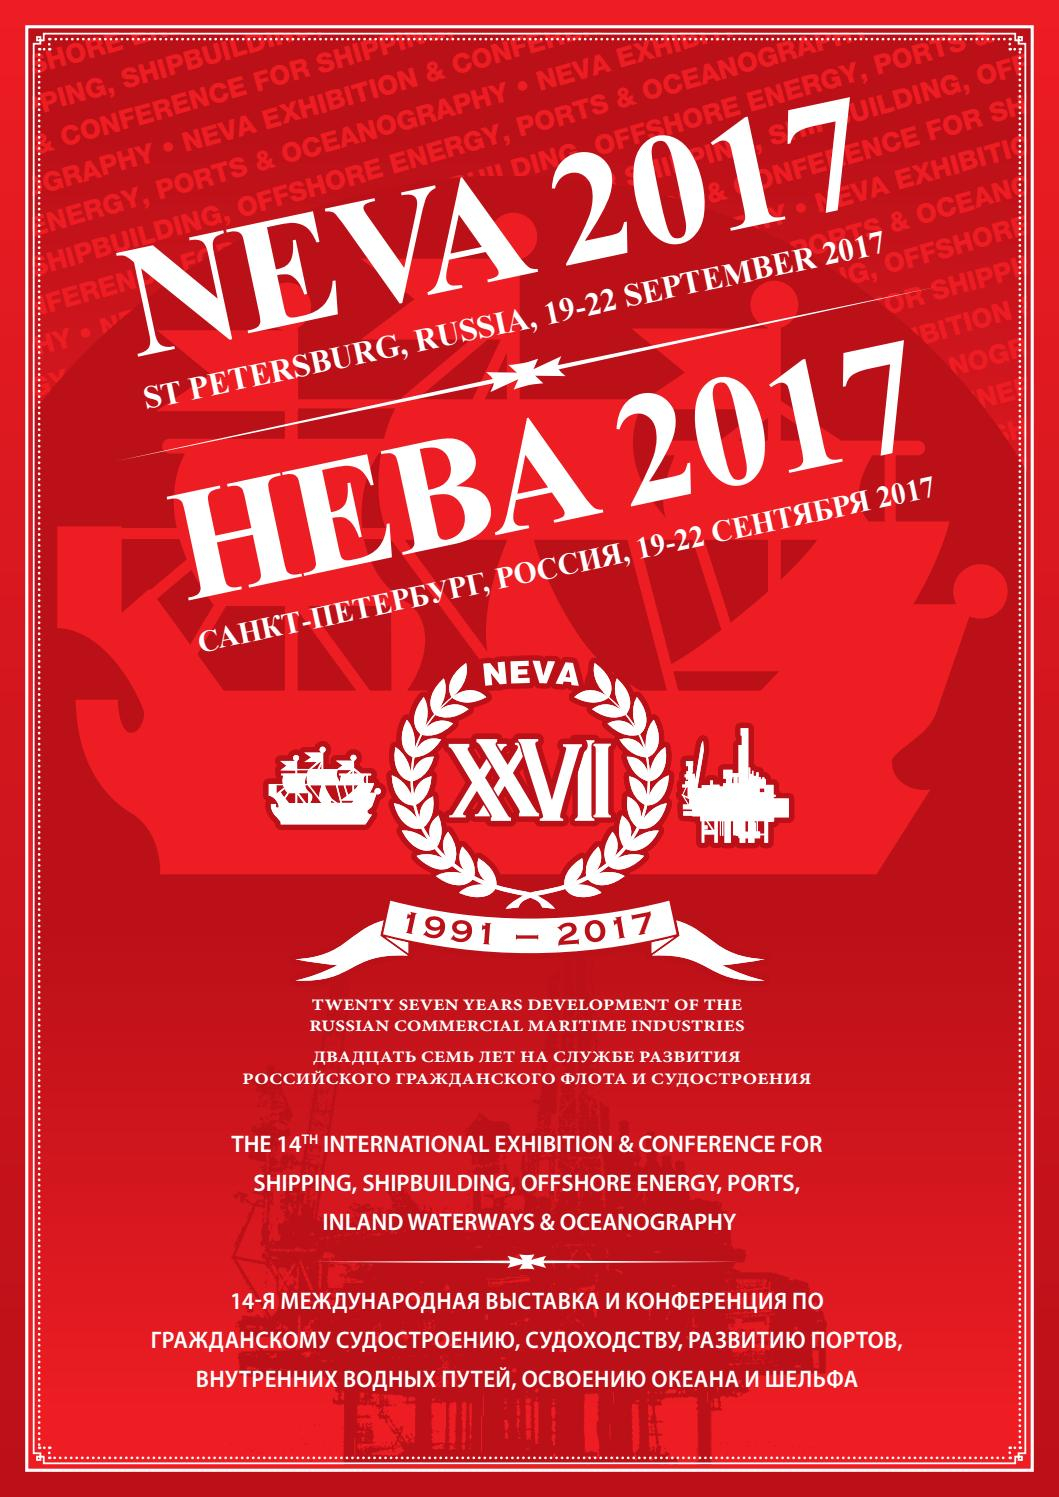 Neva 2017 Catalogue By Dolphin Exhibitions Limited - Issuu